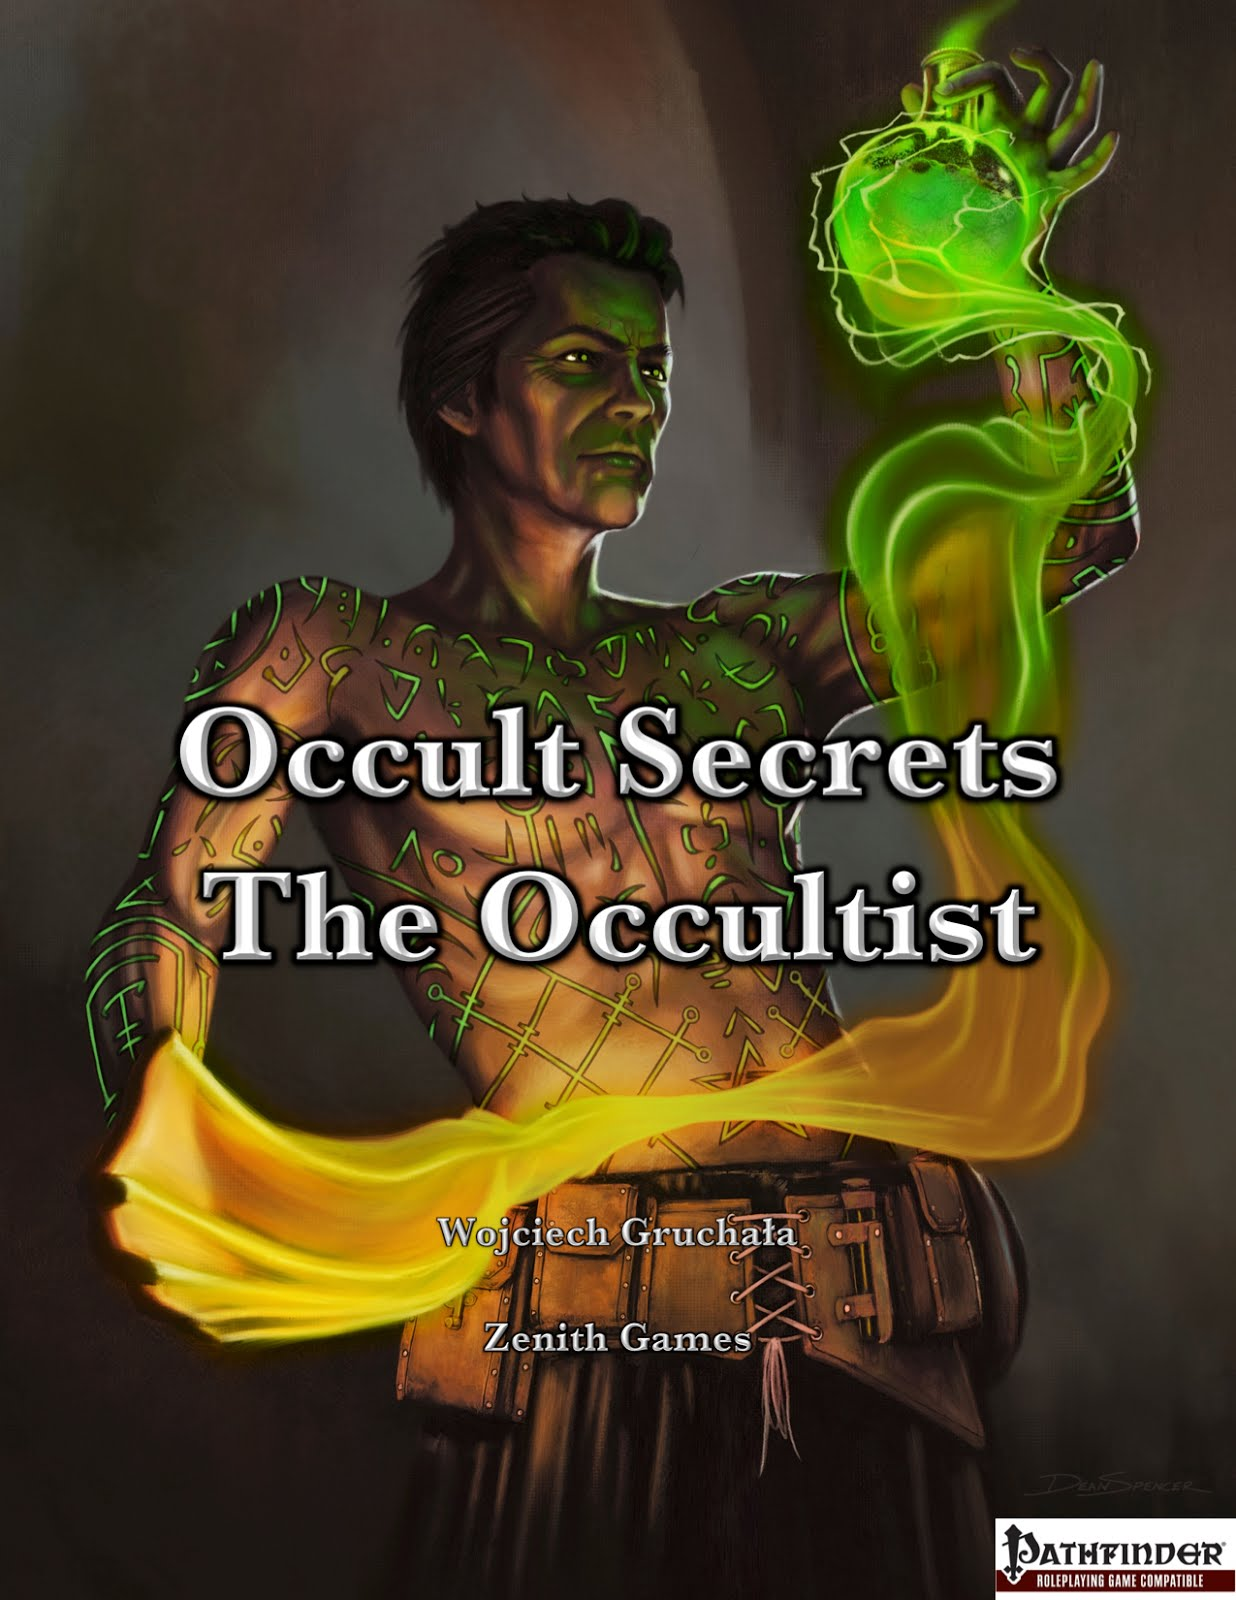 Occult Secrets: The Occultist